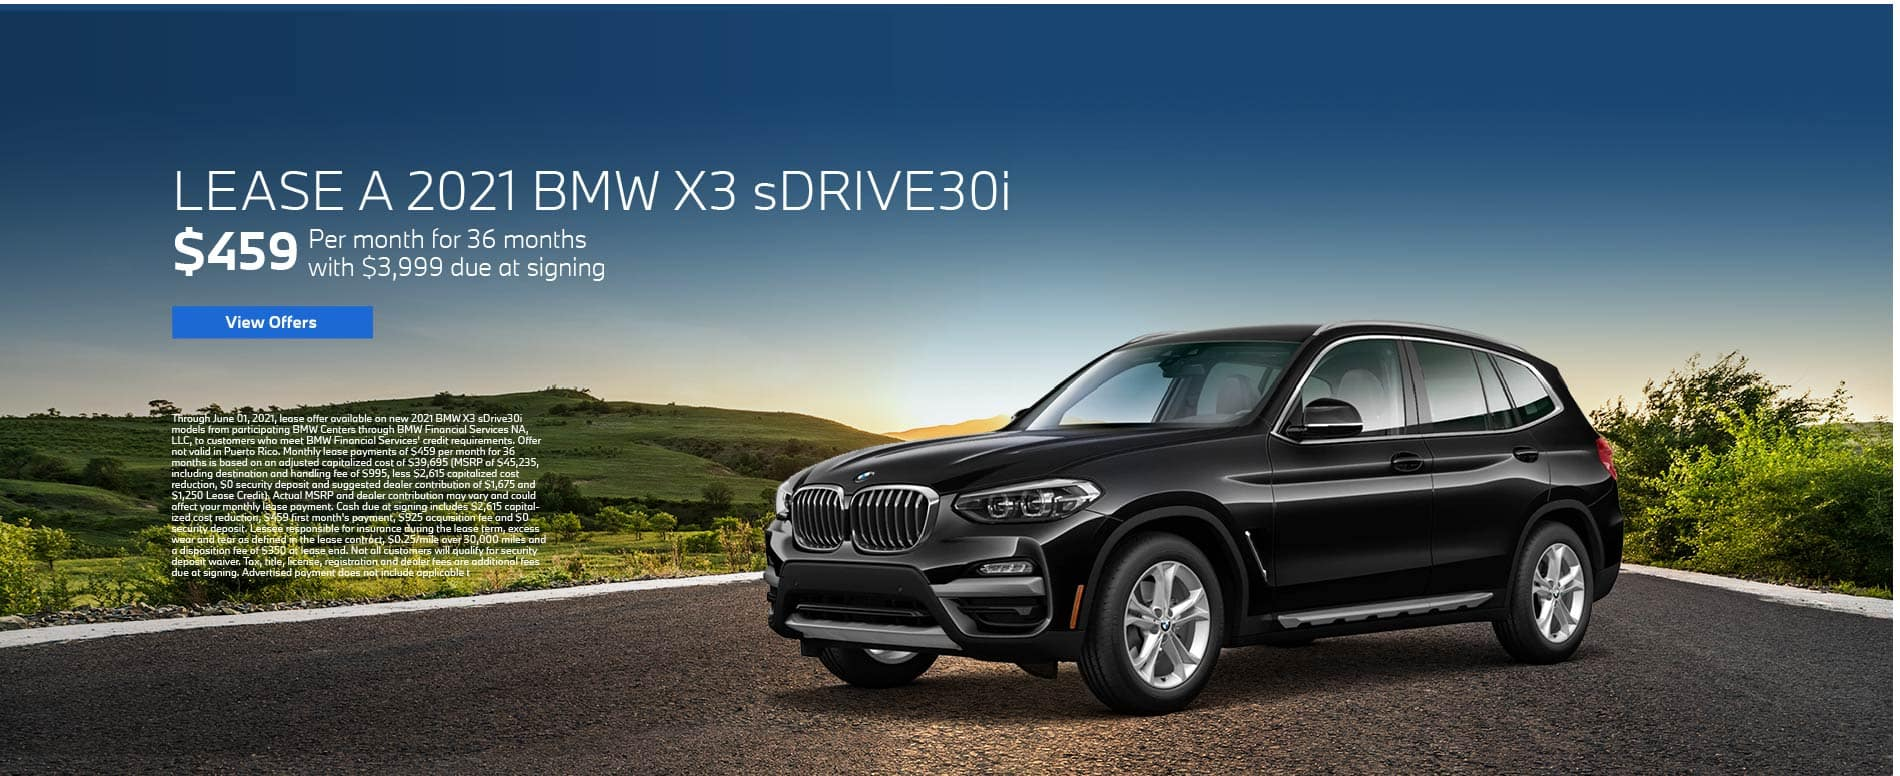 Lease a 2021 BMW X3 for $459 per month - View Offers